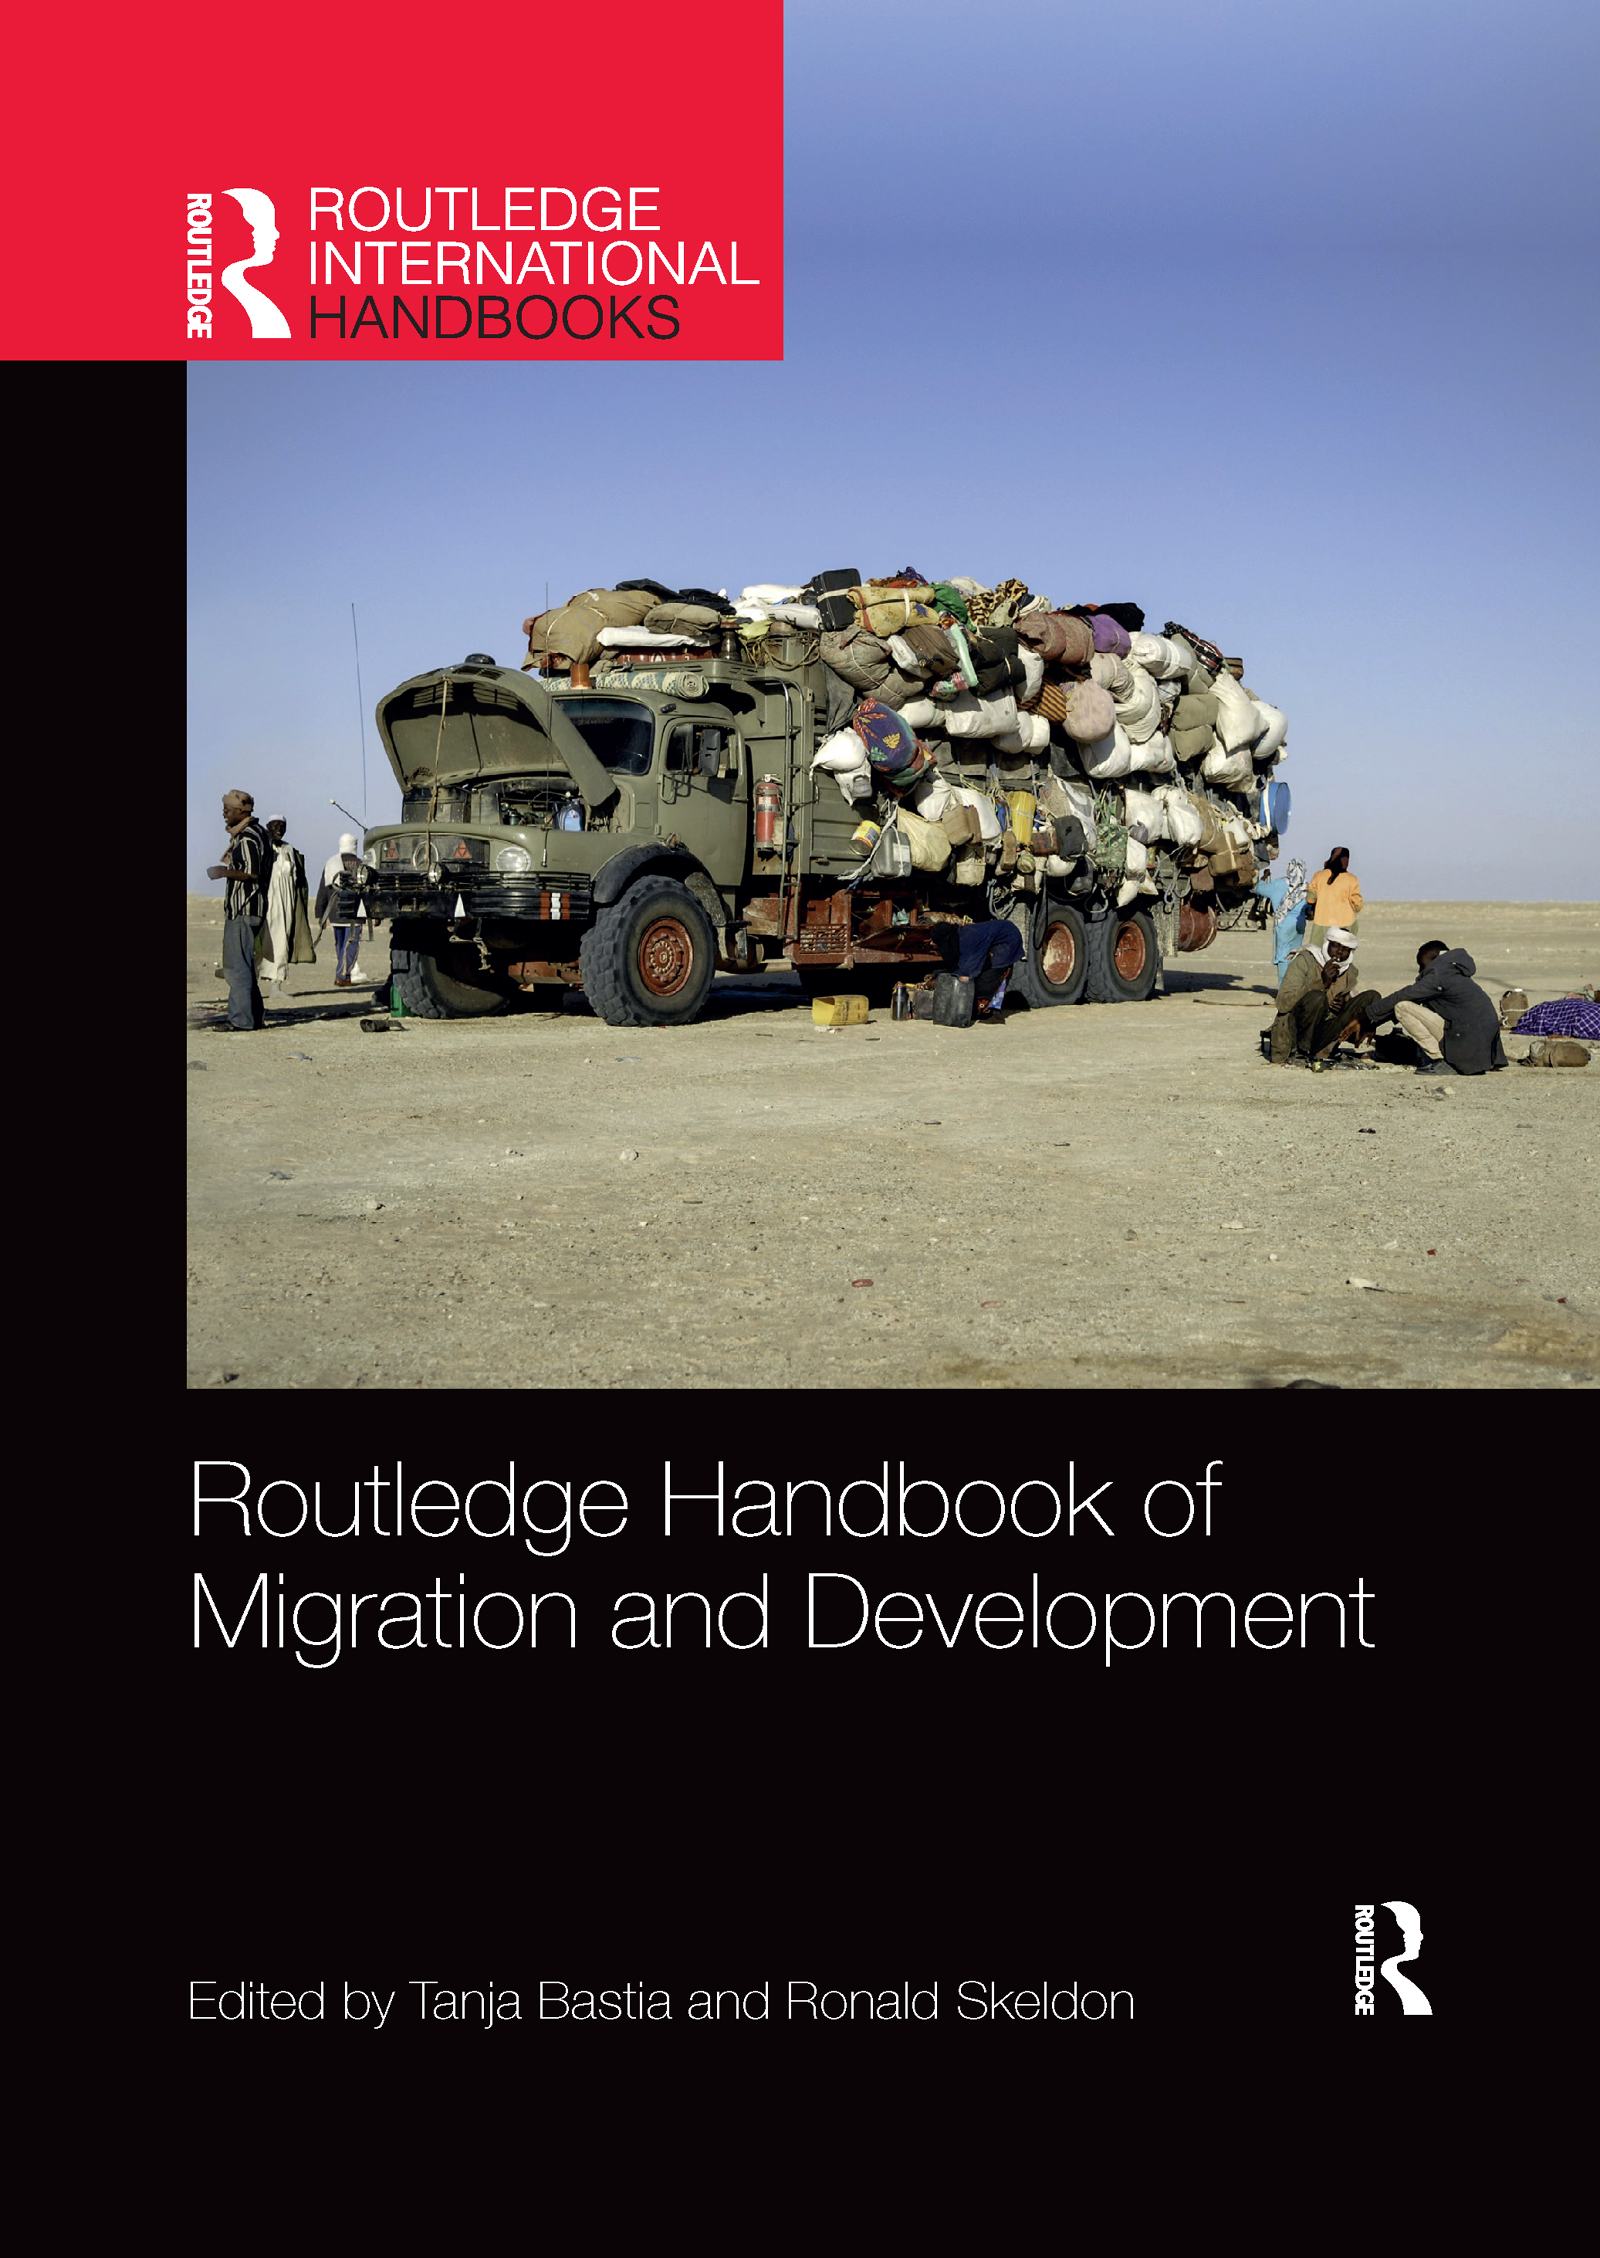 Routledge Handbook of Migration and Development